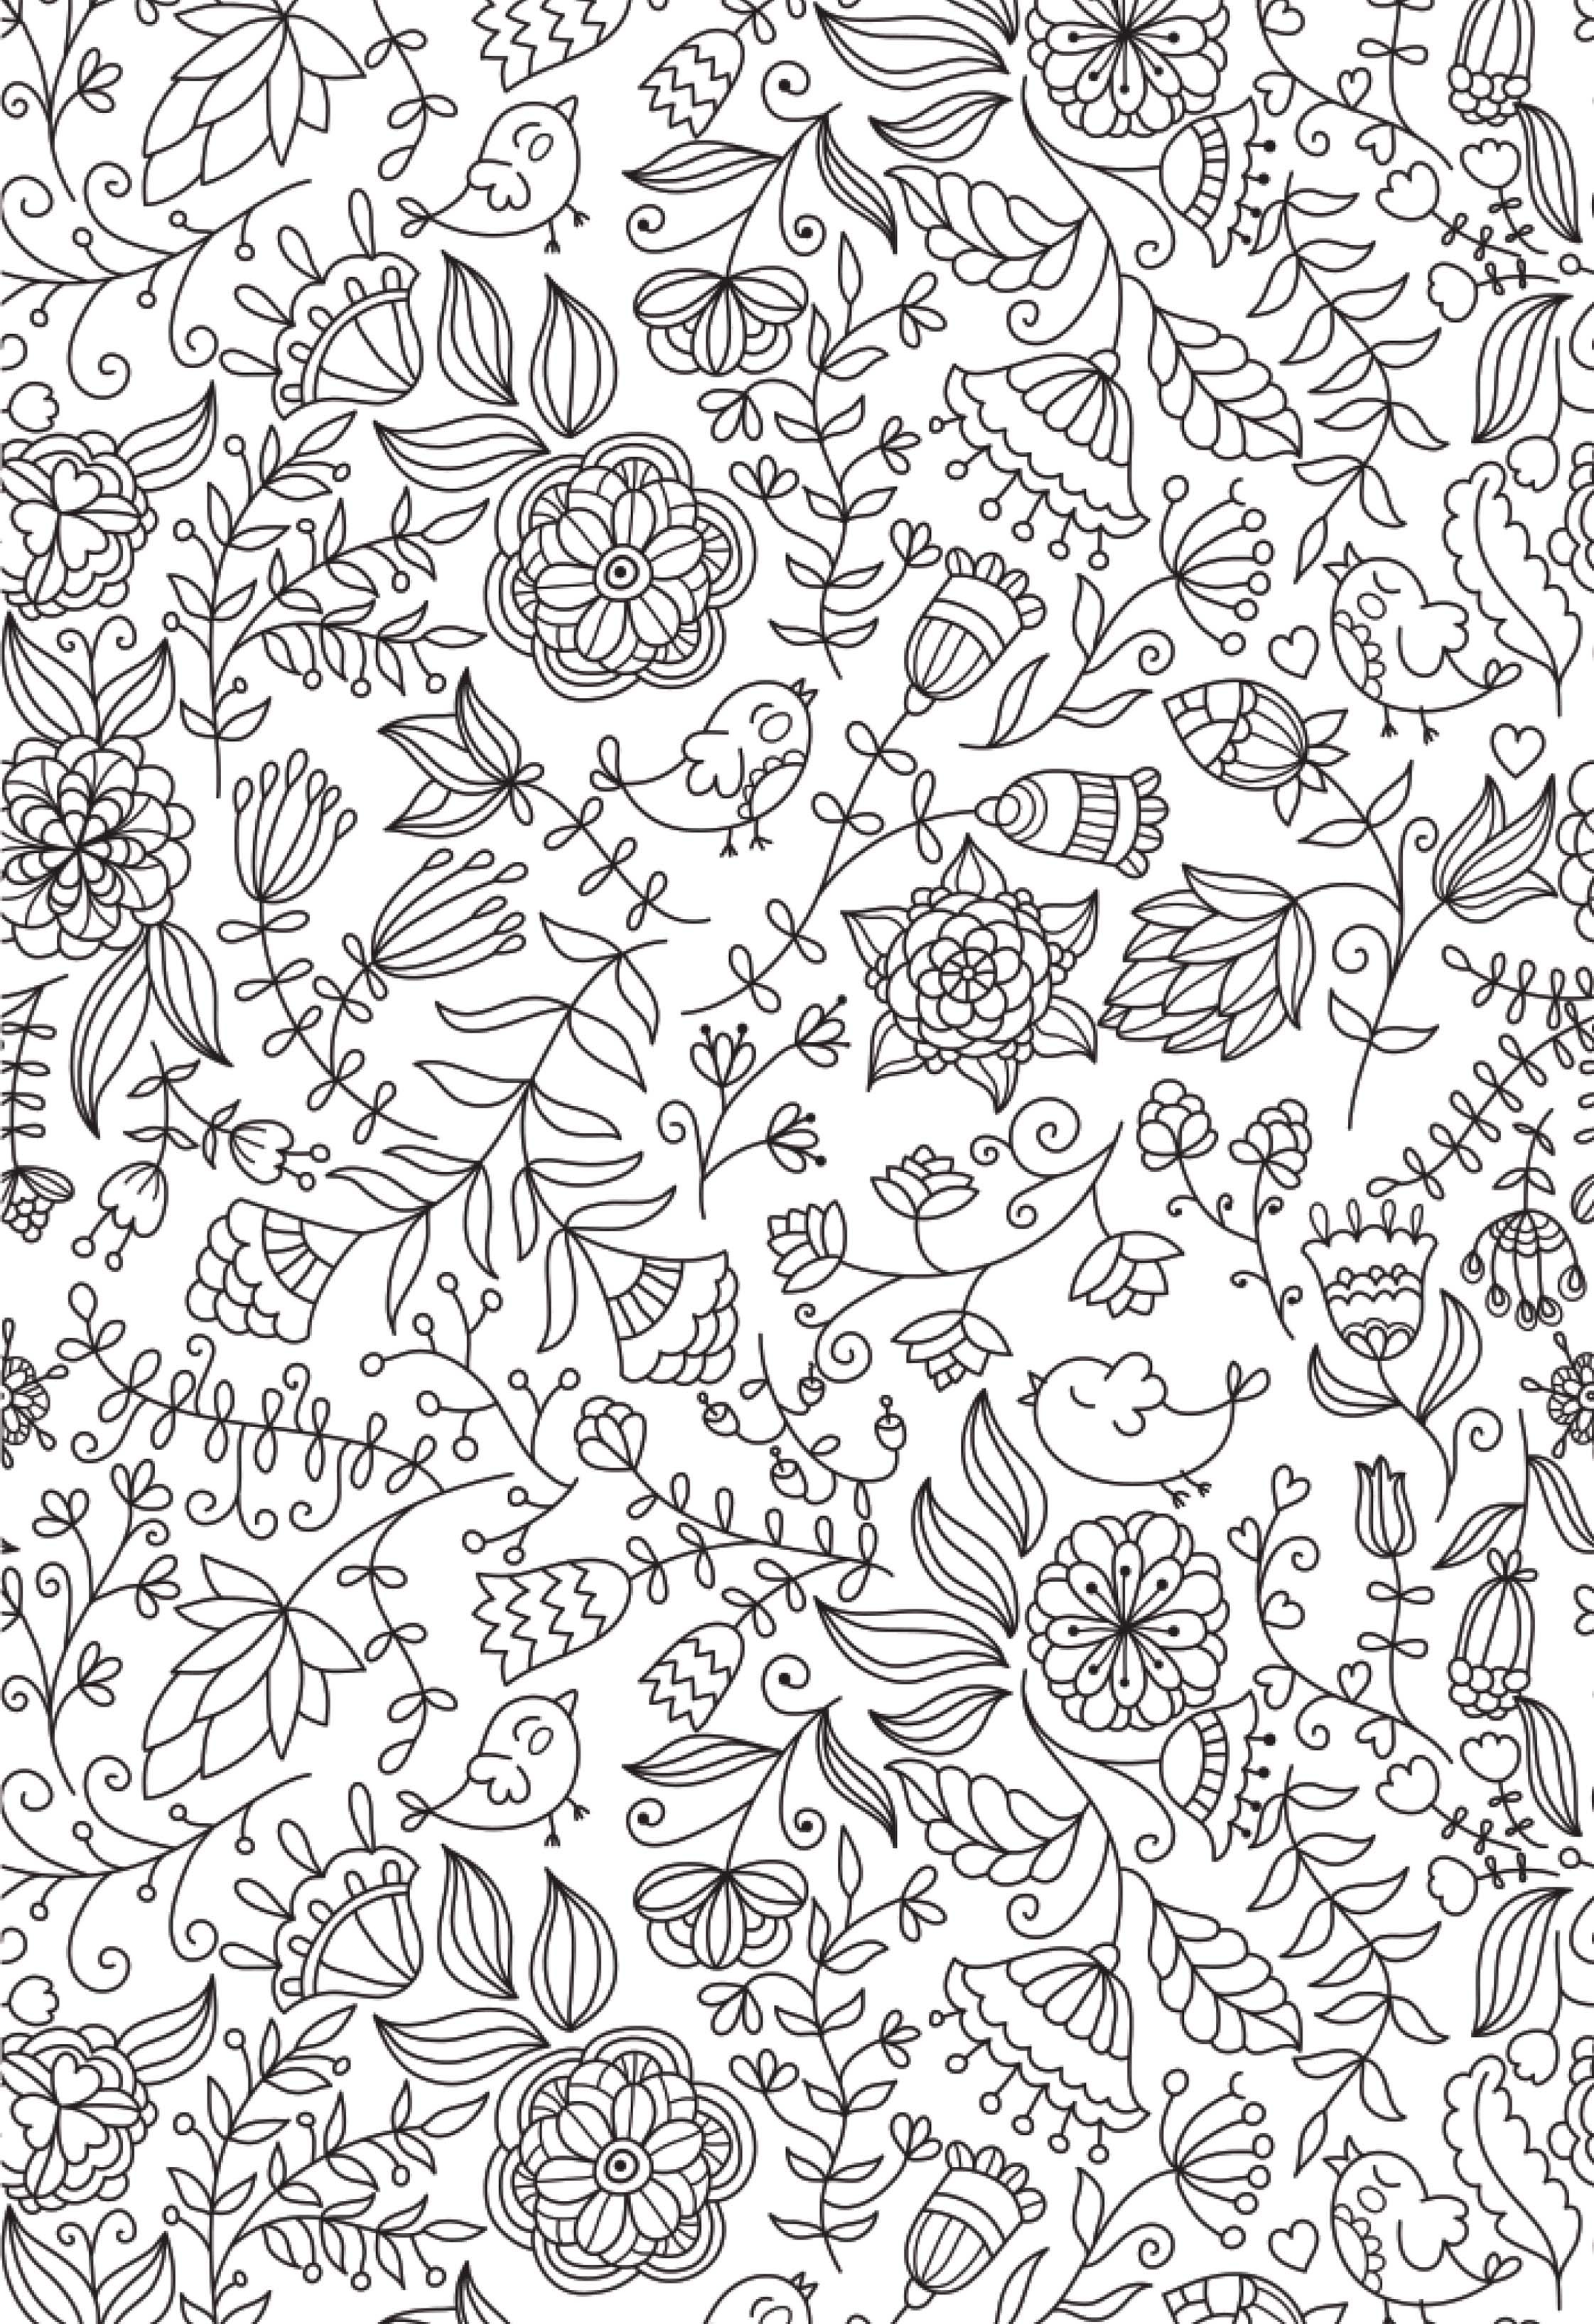 Free Colouring Pages For Adults To Help You Relax | Coloring